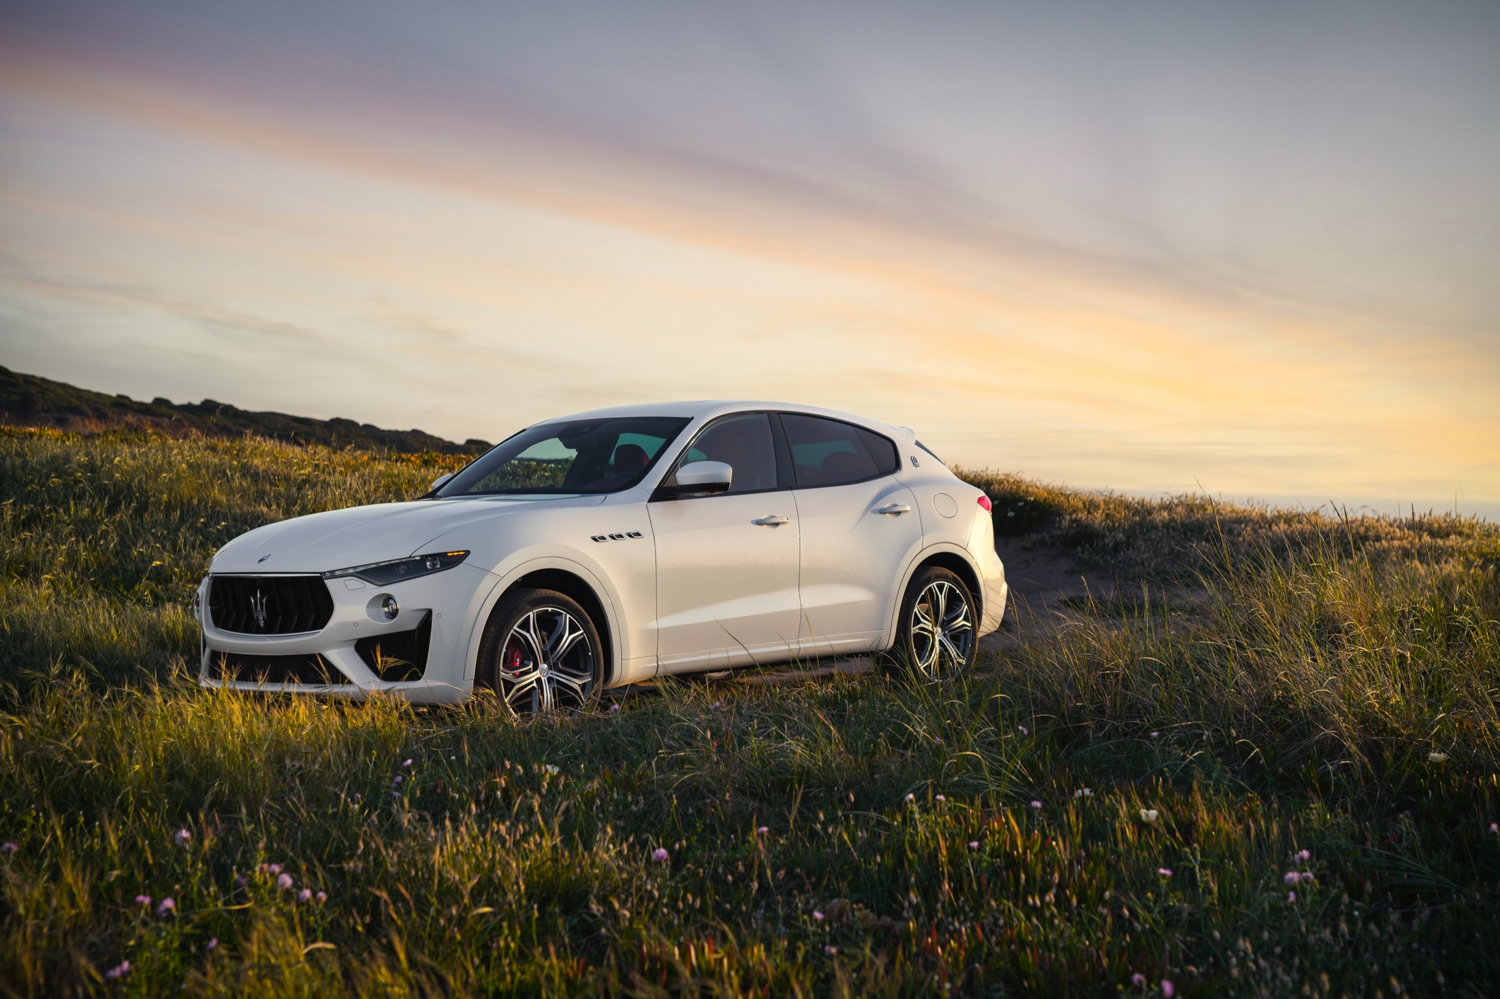 Jim Butler Maserati Blog Automotive Gt Circuits Multi Spark For Electronic This Is The Astonishing And Game Changing Vehicle That Roadshow Labeled As Having A Heart Of Gold Finally Received Engine It Deserves